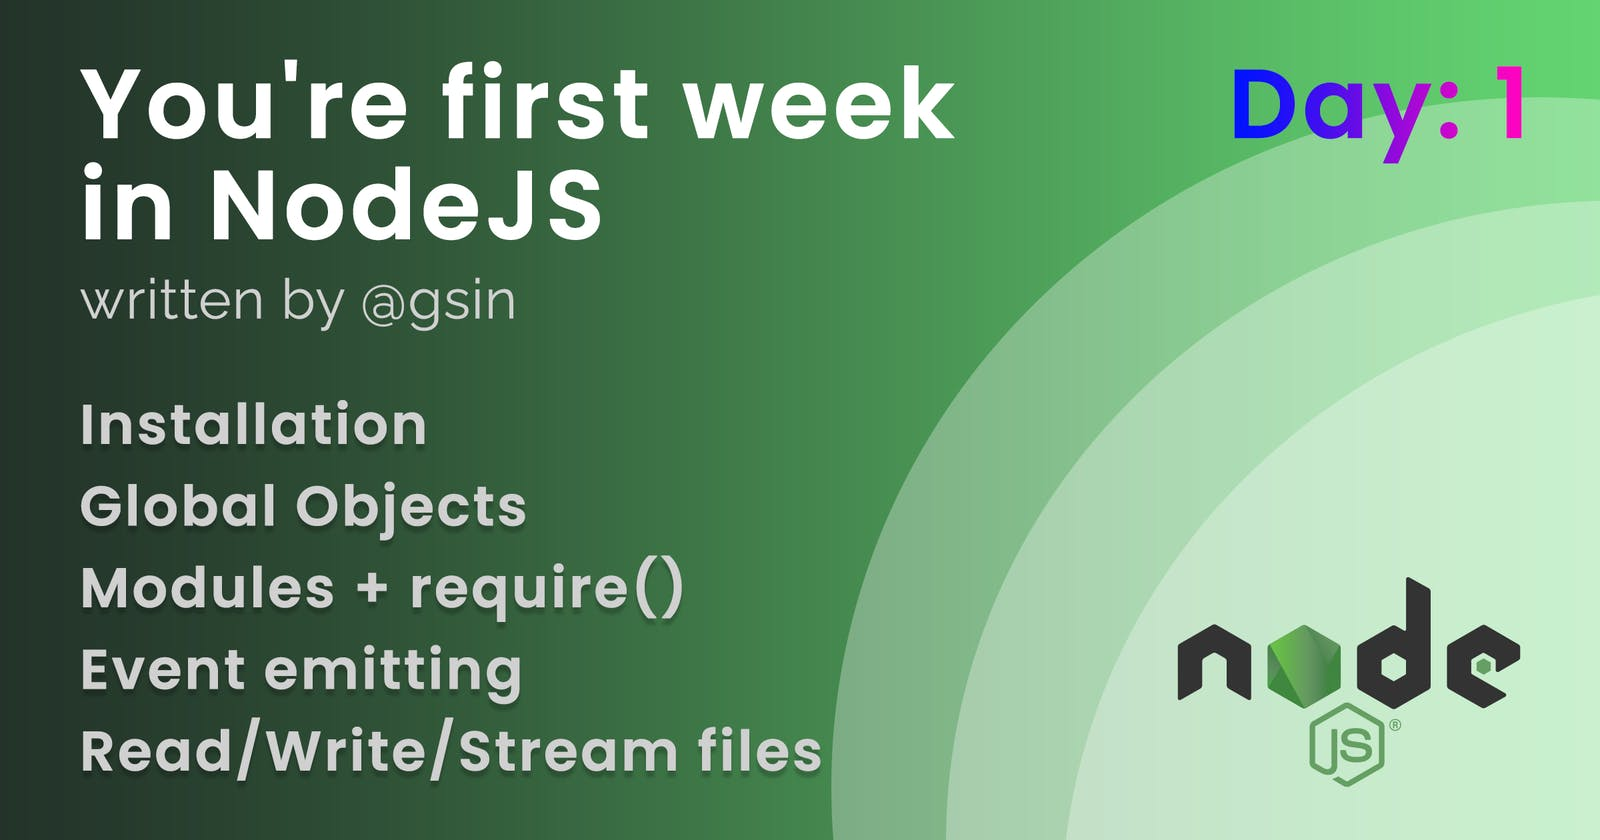 Day 1 - Your first week in NodeJS